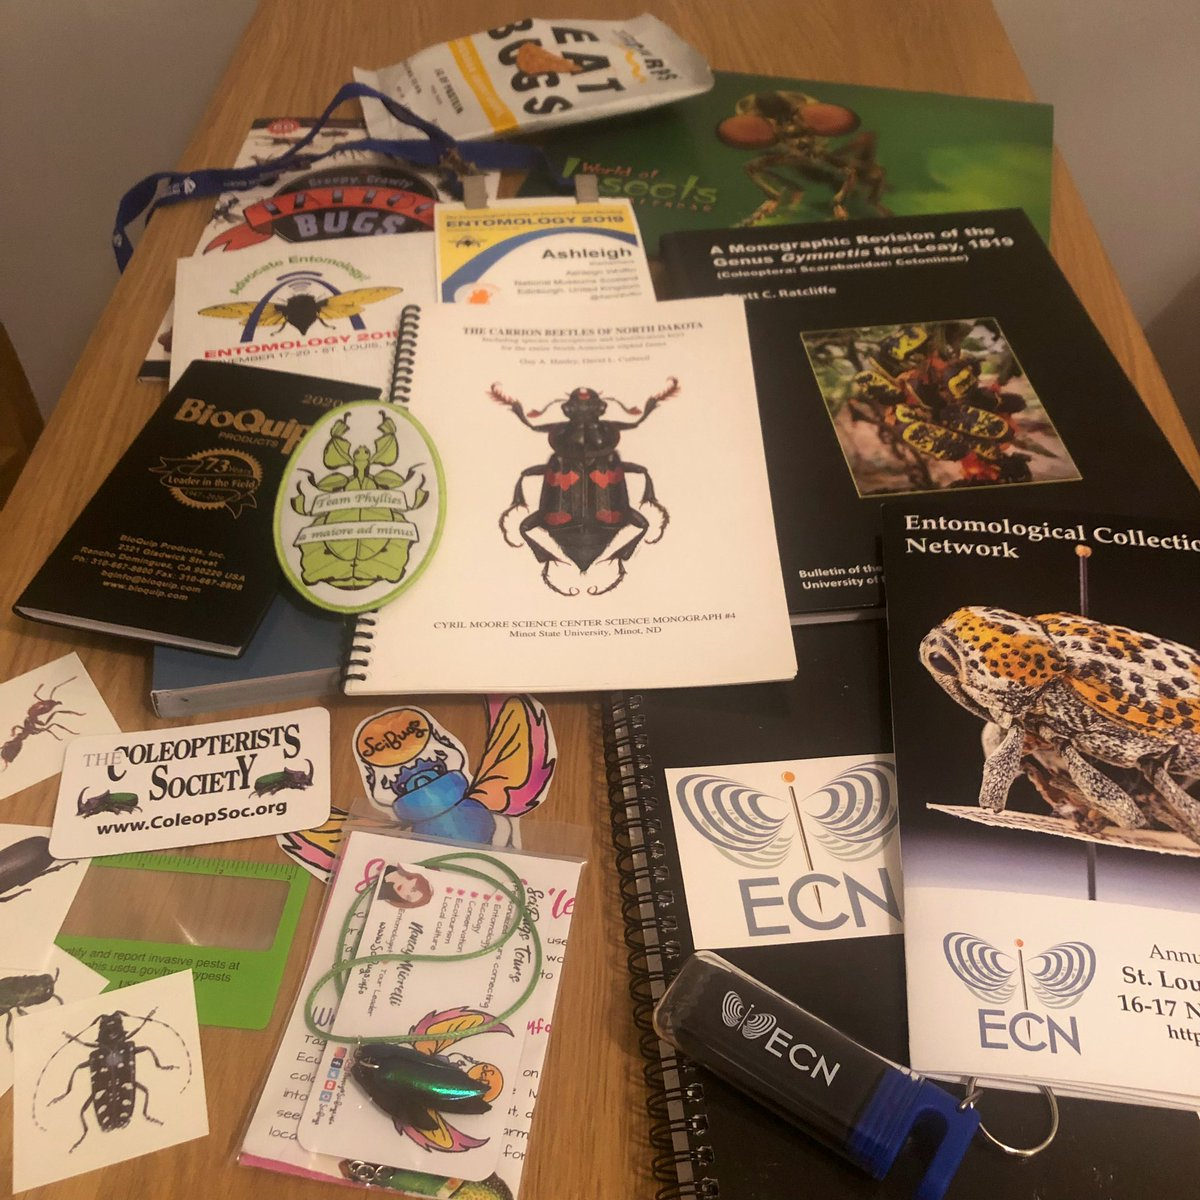 Pretty happy with all the goodies that I picked up (or was gifted) at #ECN2019 & #EntSoc19 ... #TeamBeetle #ConferenceSwag #Entomology<br>http://pic.twitter.com/TK7zTlcUq5